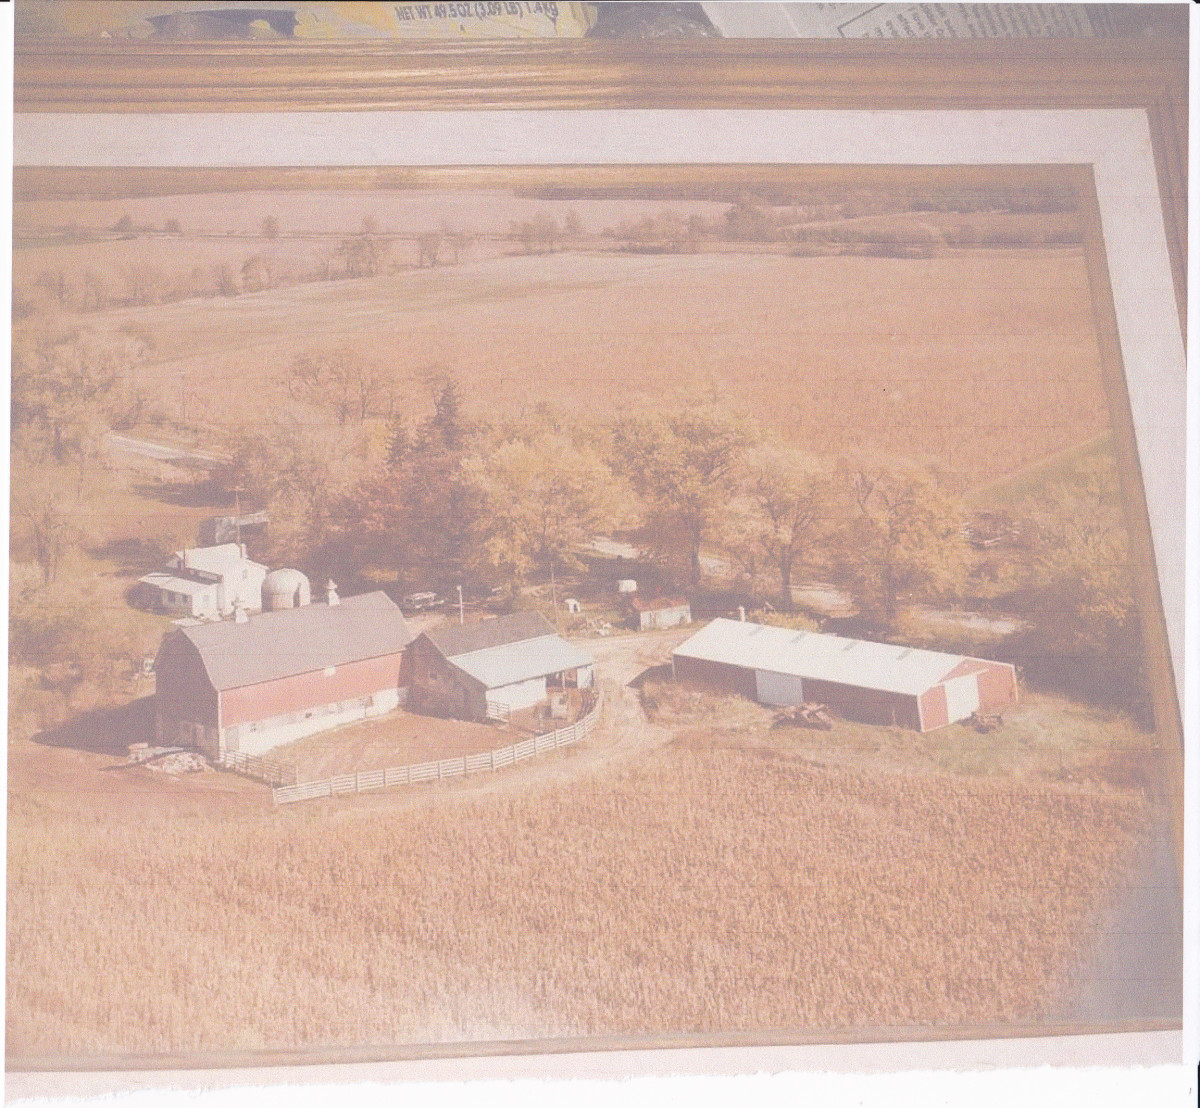 Realizing the American Dream by Having a Family Farm